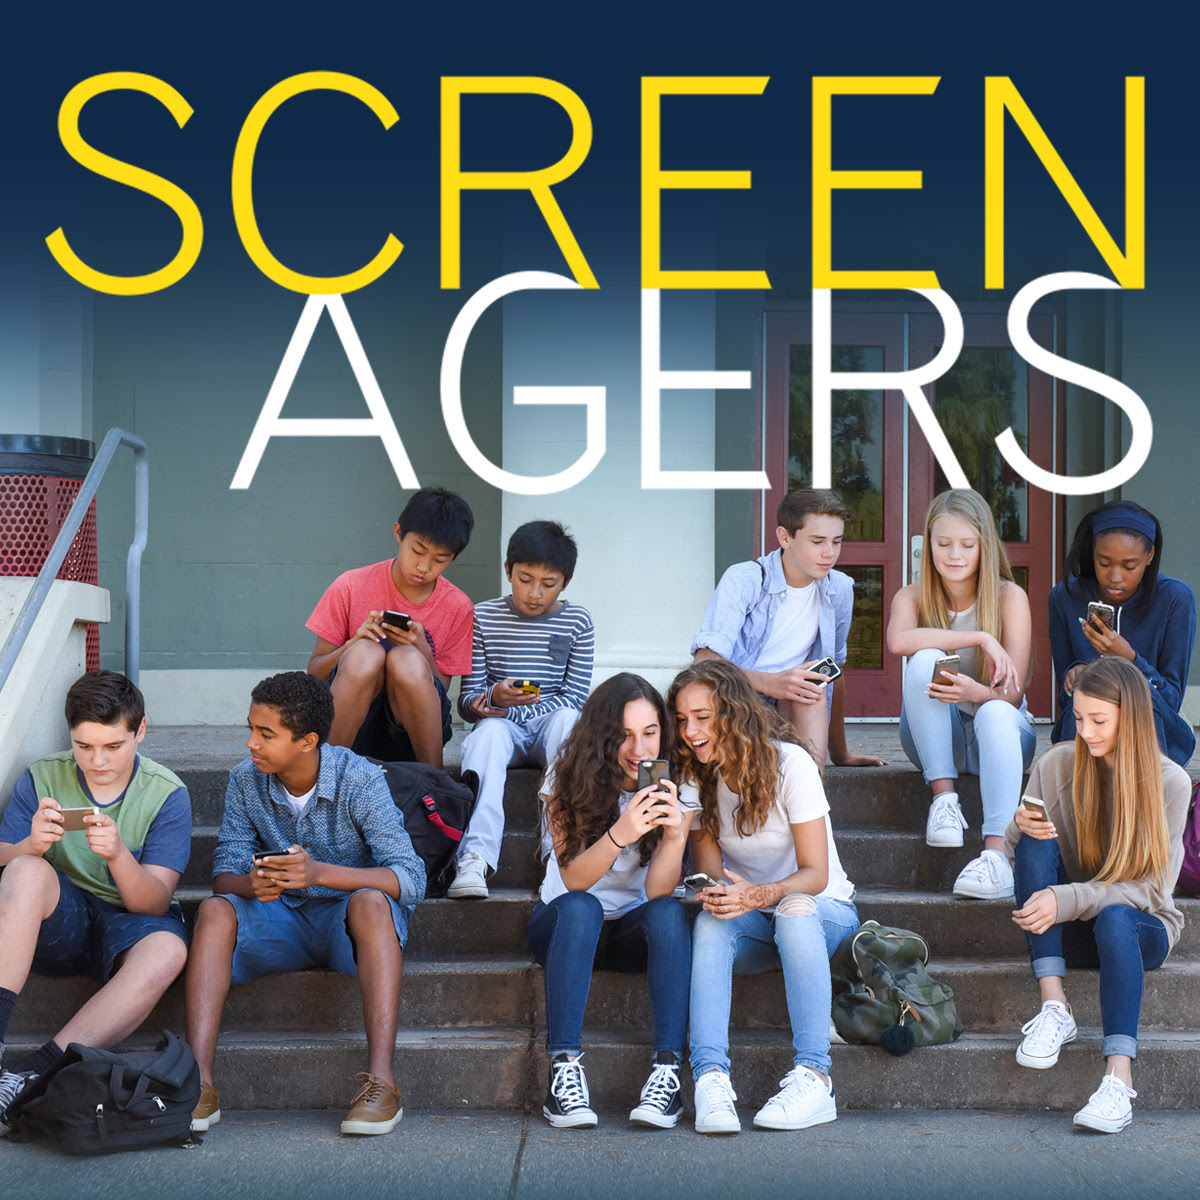 Screenagers Film Presented By Alturas International Academy